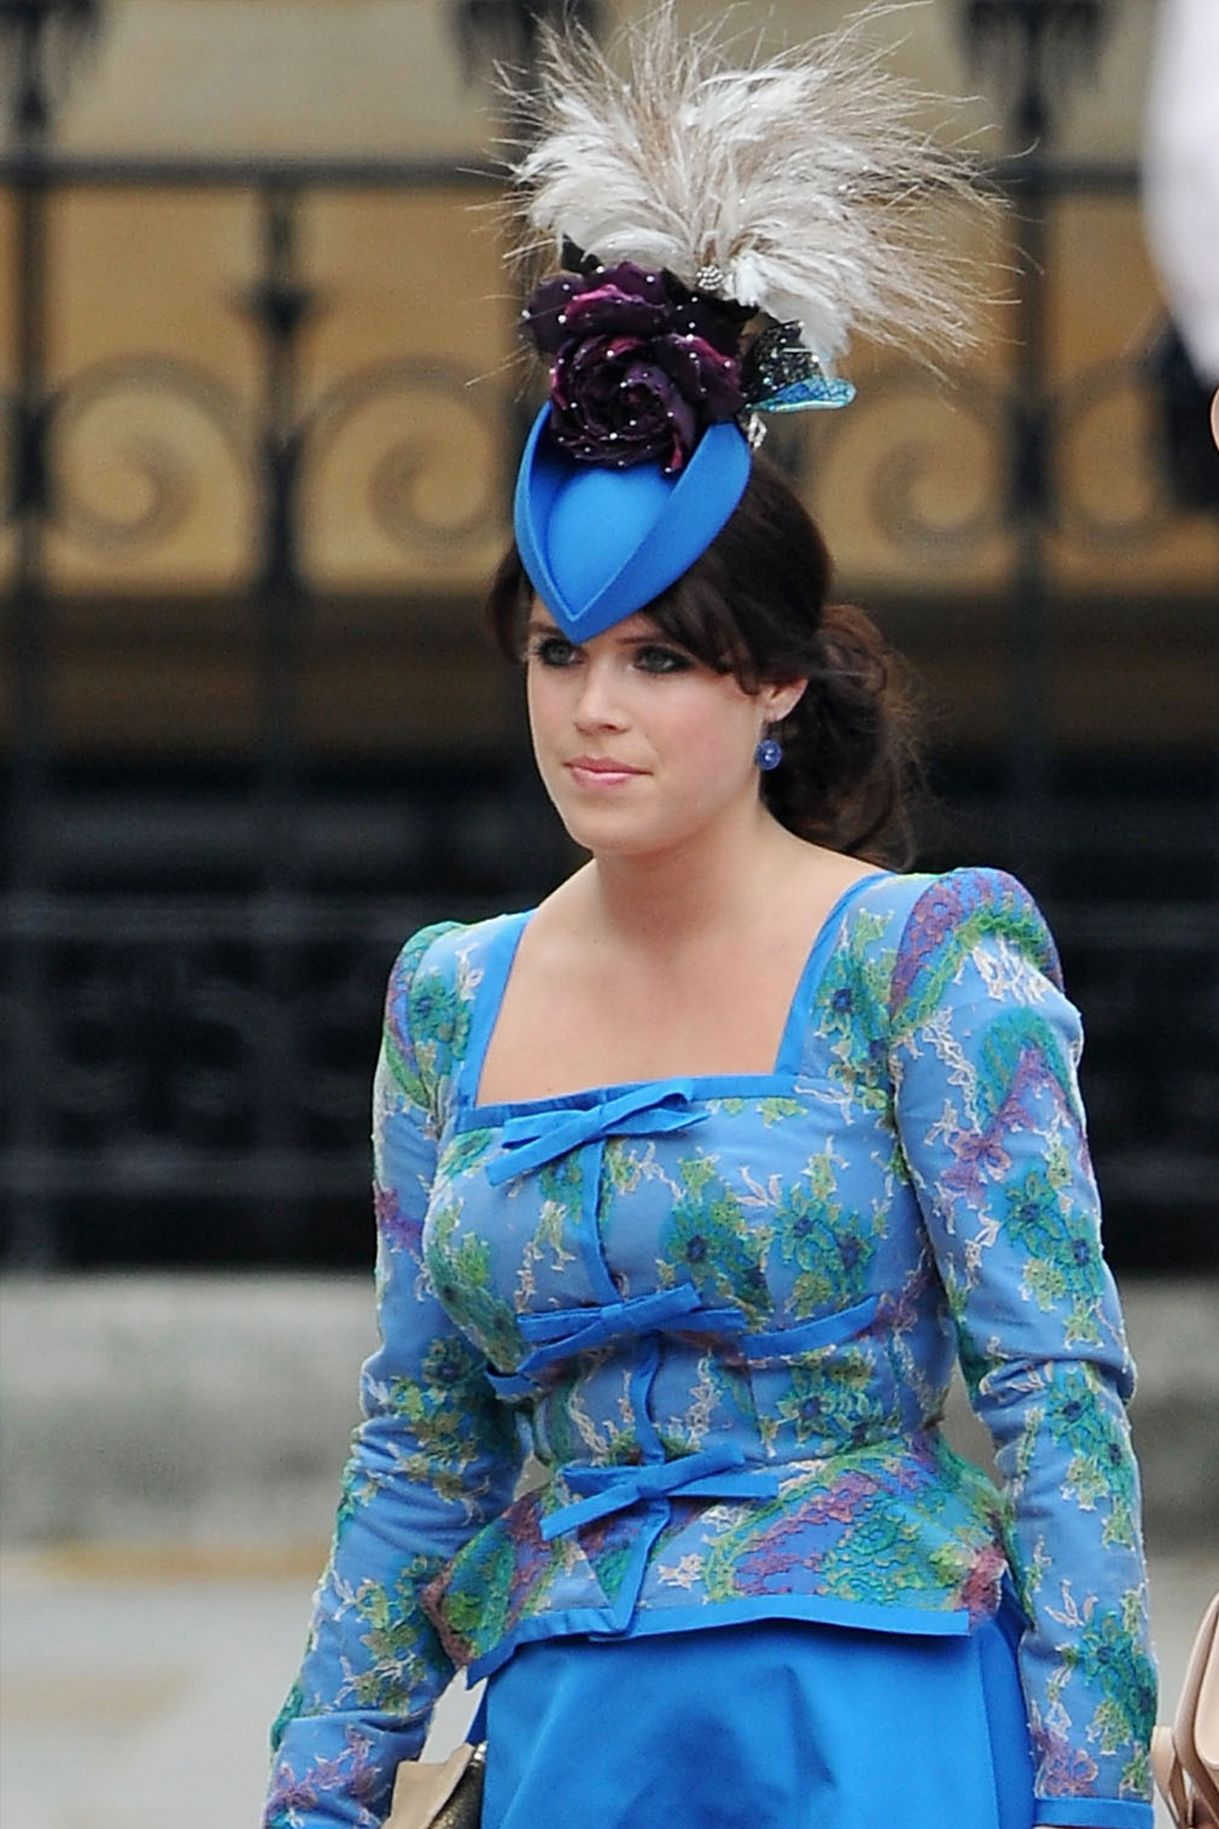 c383b1b8a659e The Craziest Royal Wedding Hats of All Time